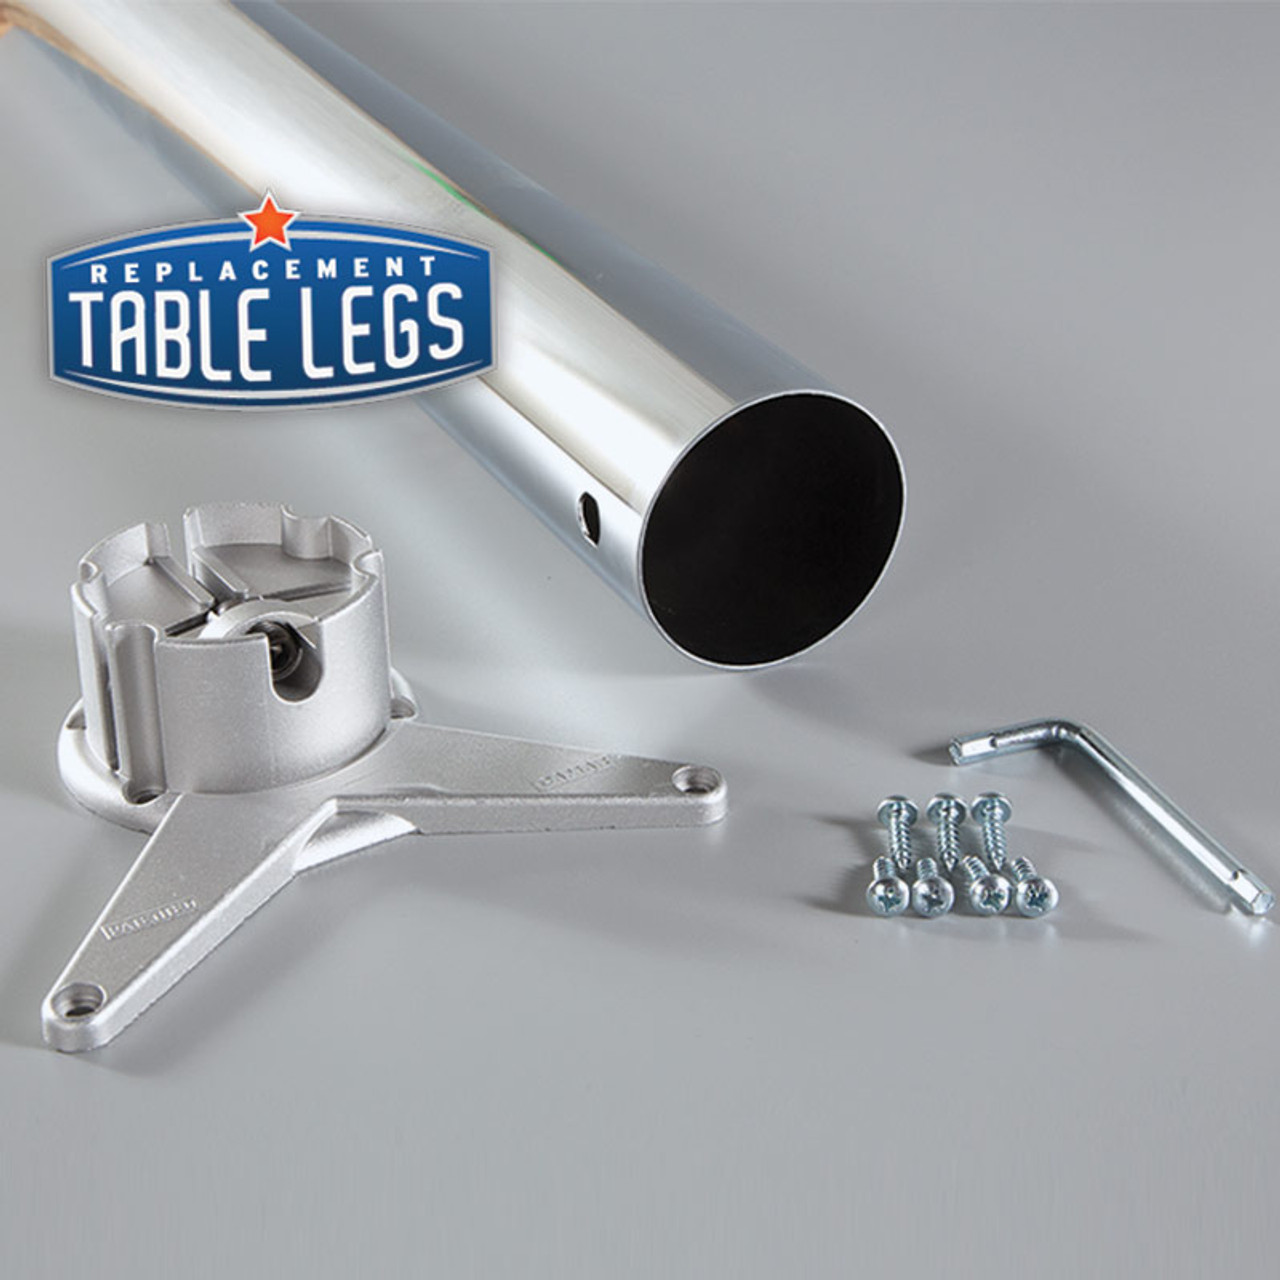 Table leg, mounting bracket, screws, and adapter - replacementtablelegs.com